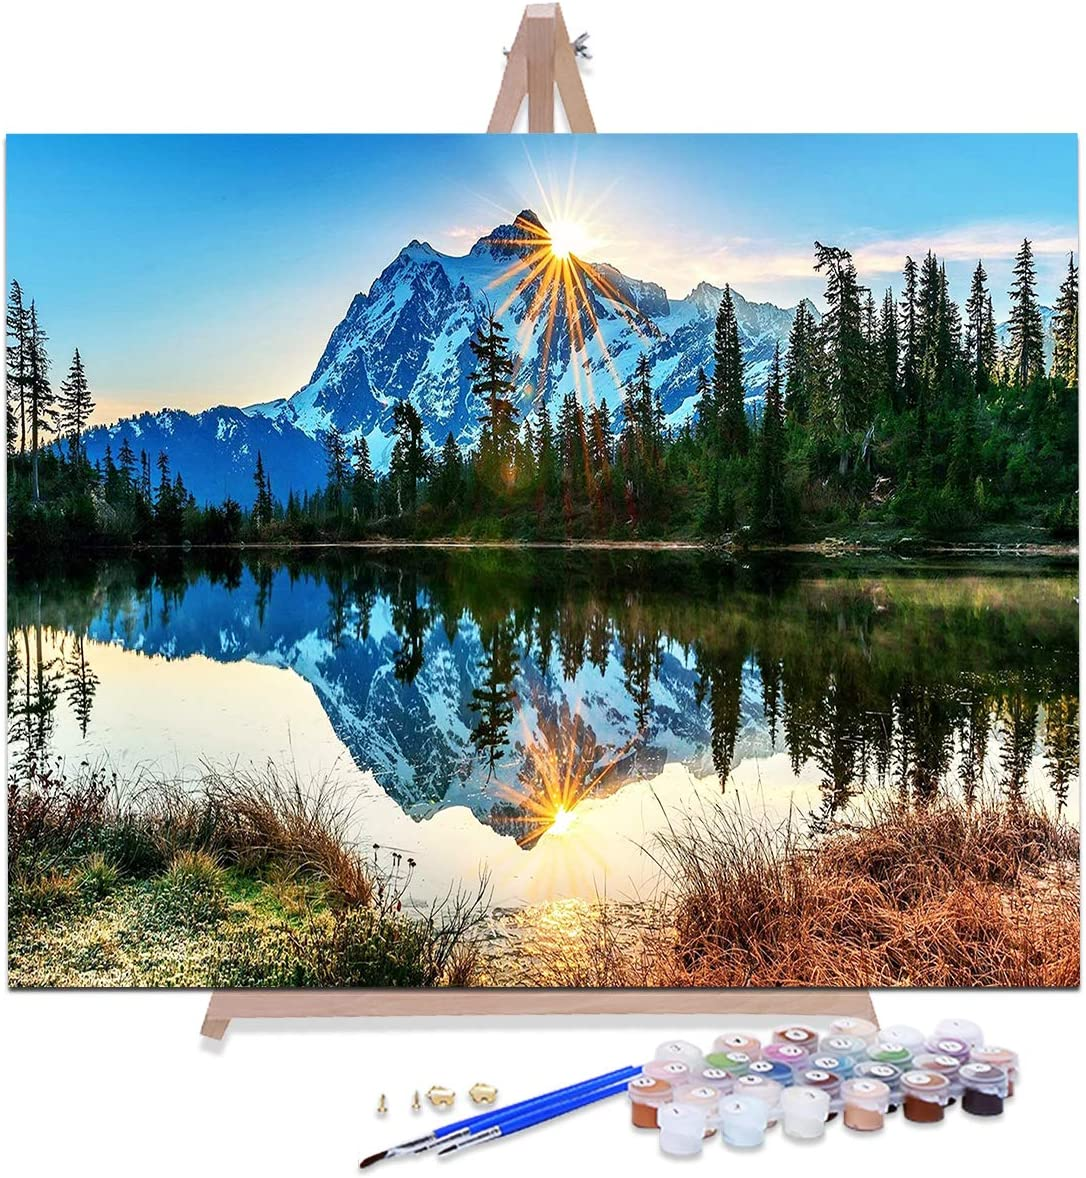 AOLIGE 16 by Max 44% OFF 20 Manufacturer regenerated product Inch Paint Adults Framed for Eas Numbers with